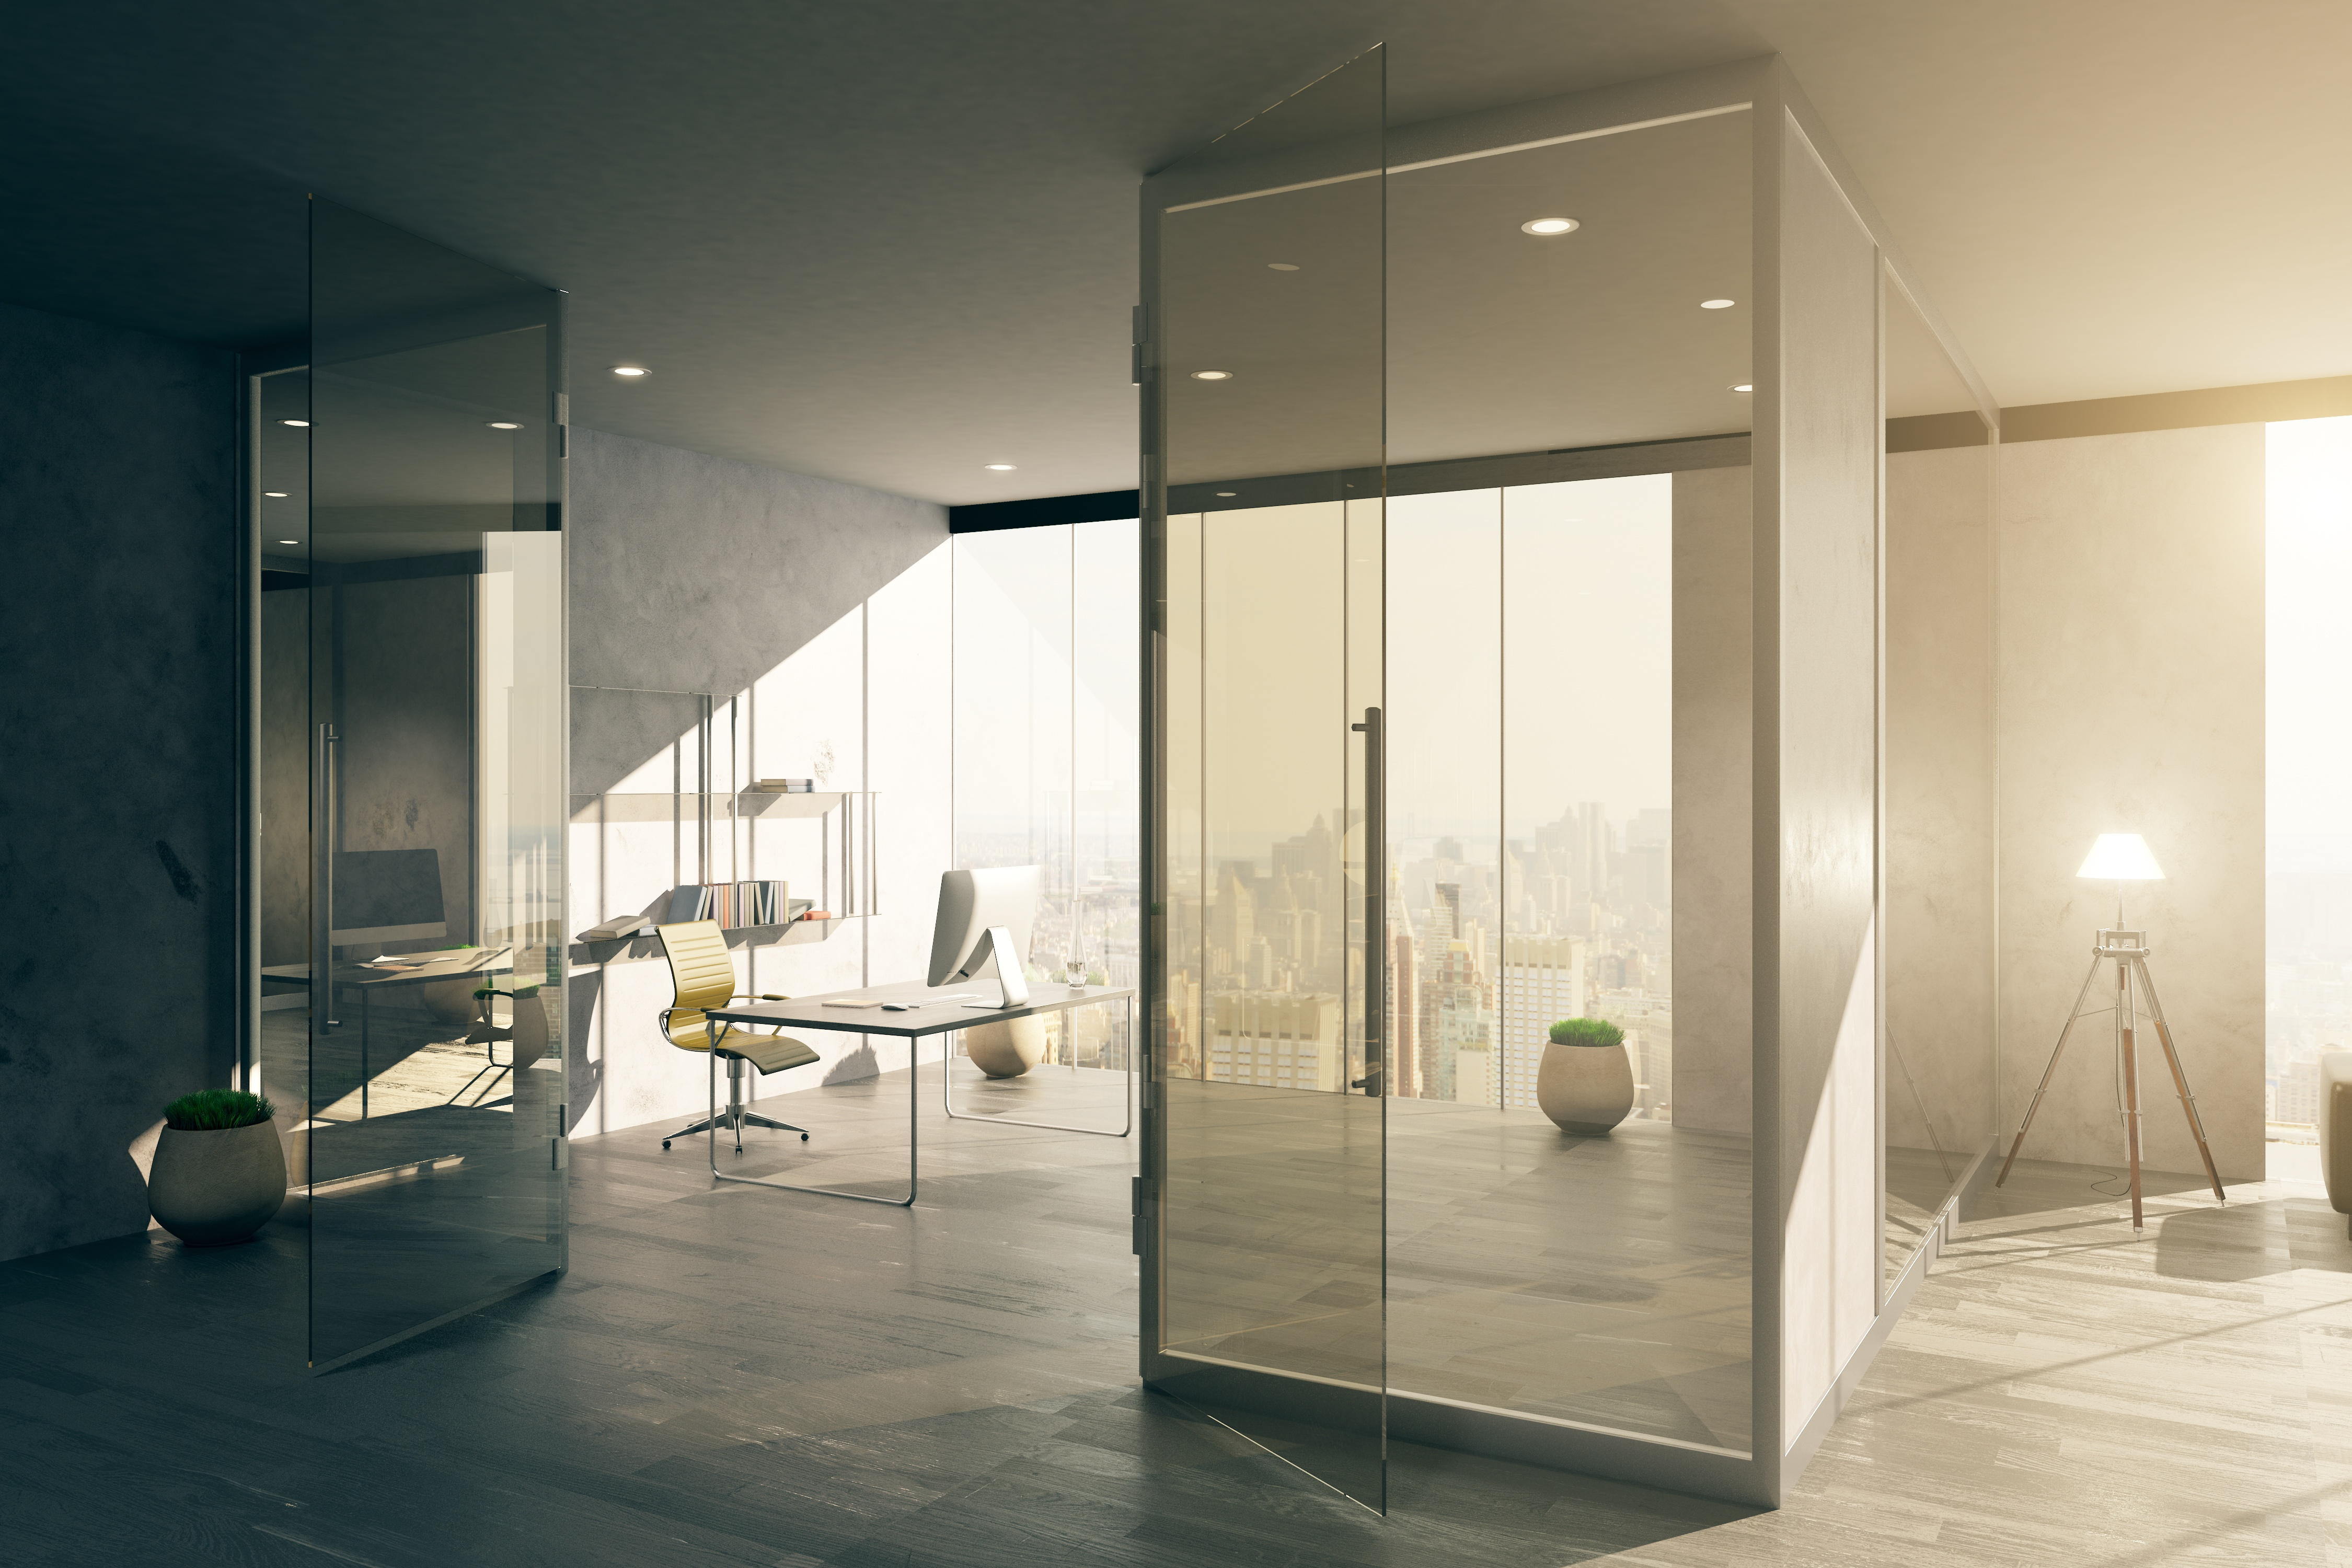 Use Office Modular Walls in Your Next Office Renovation